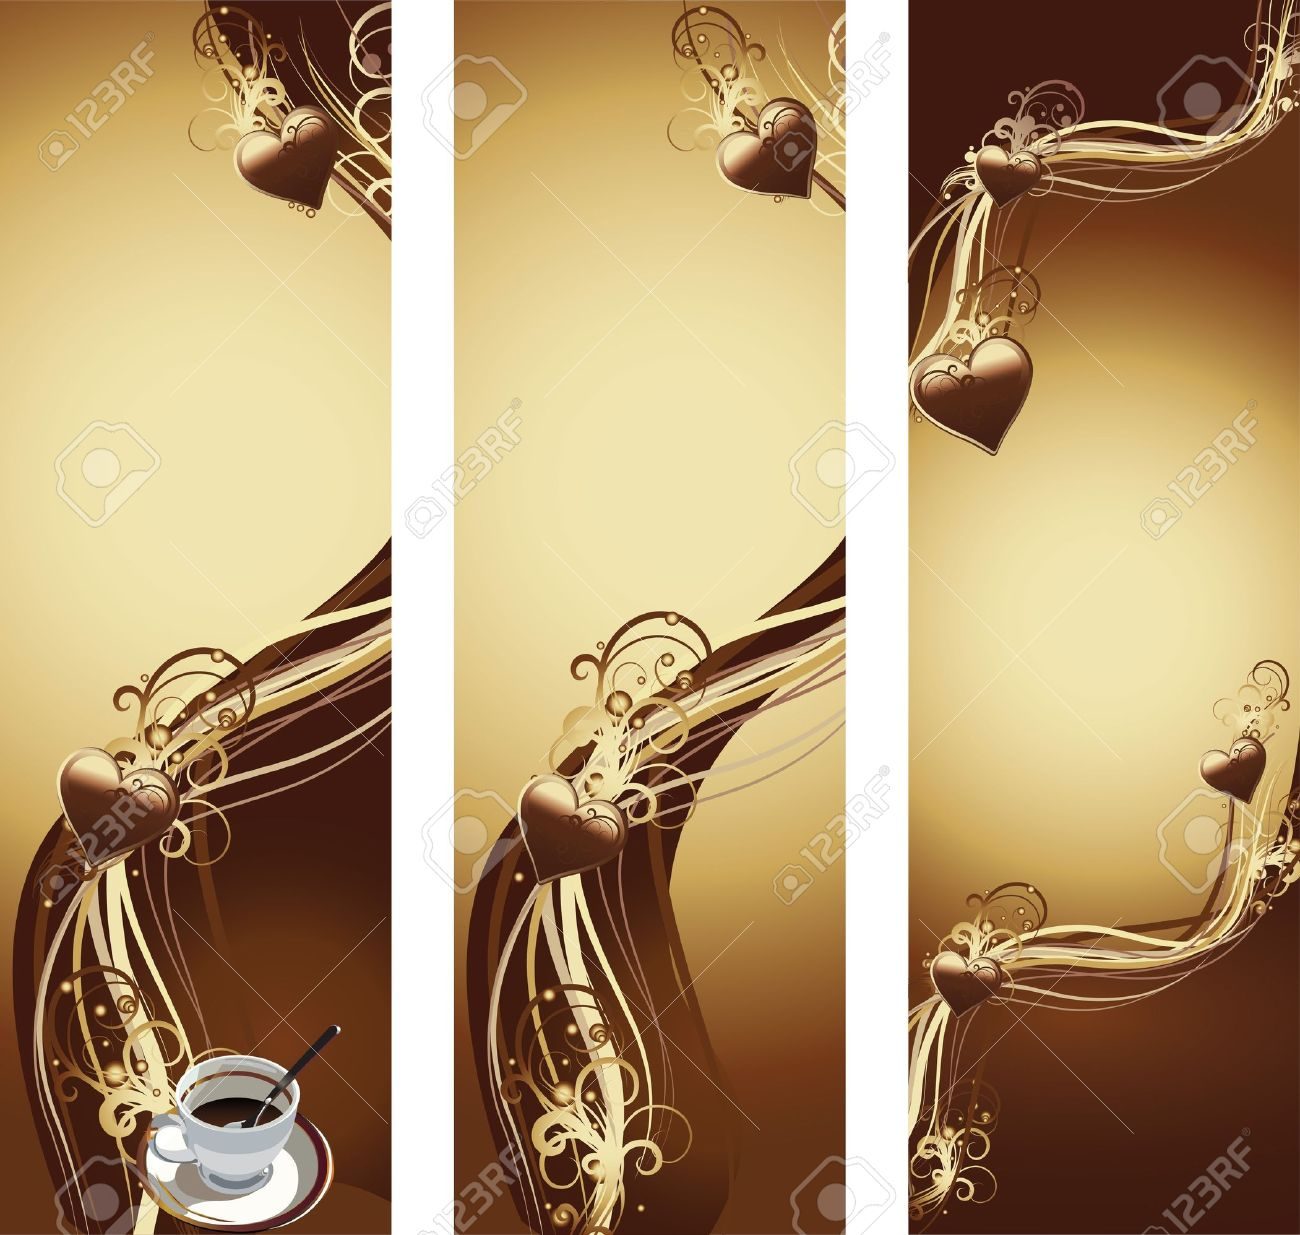 vectol illustration contains the image of banner with cup of coffee and chocolate texture with hearts Stock Vector - 12085680